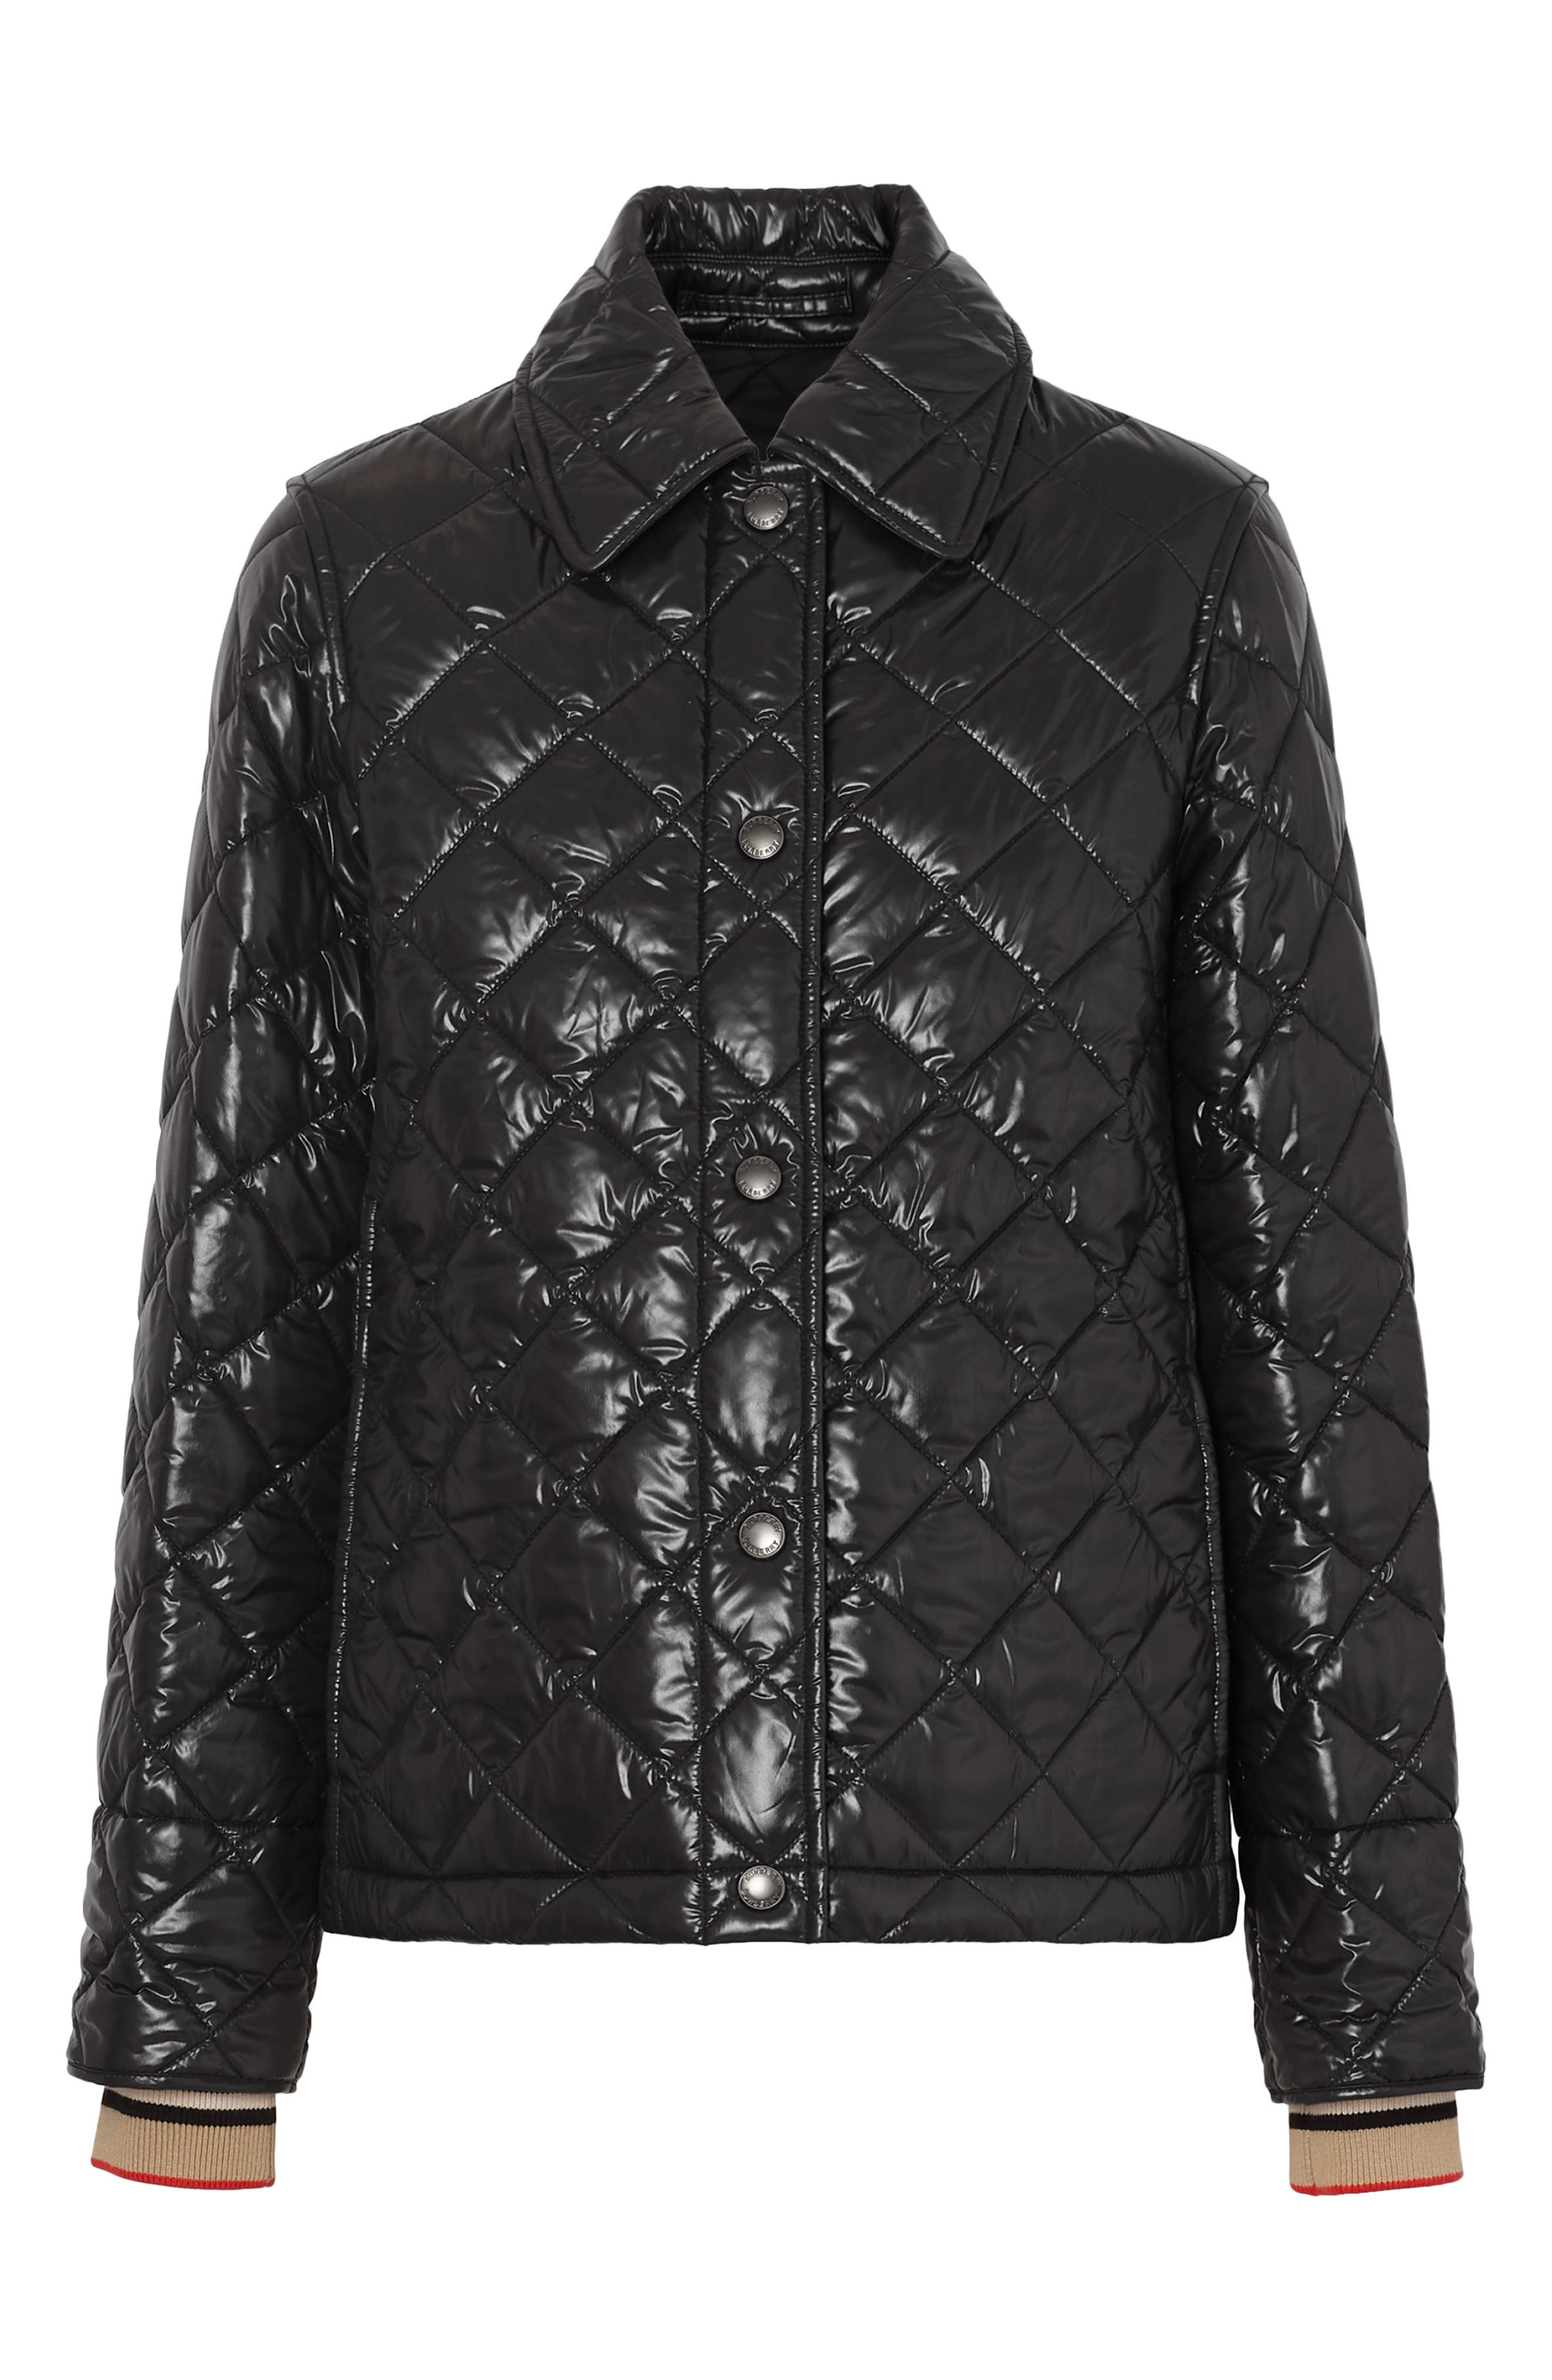 BURBERRY, Heathfield Frinton Knit Cuff Quilted Jacket, Alternate thumbnail 6, color, BLACK